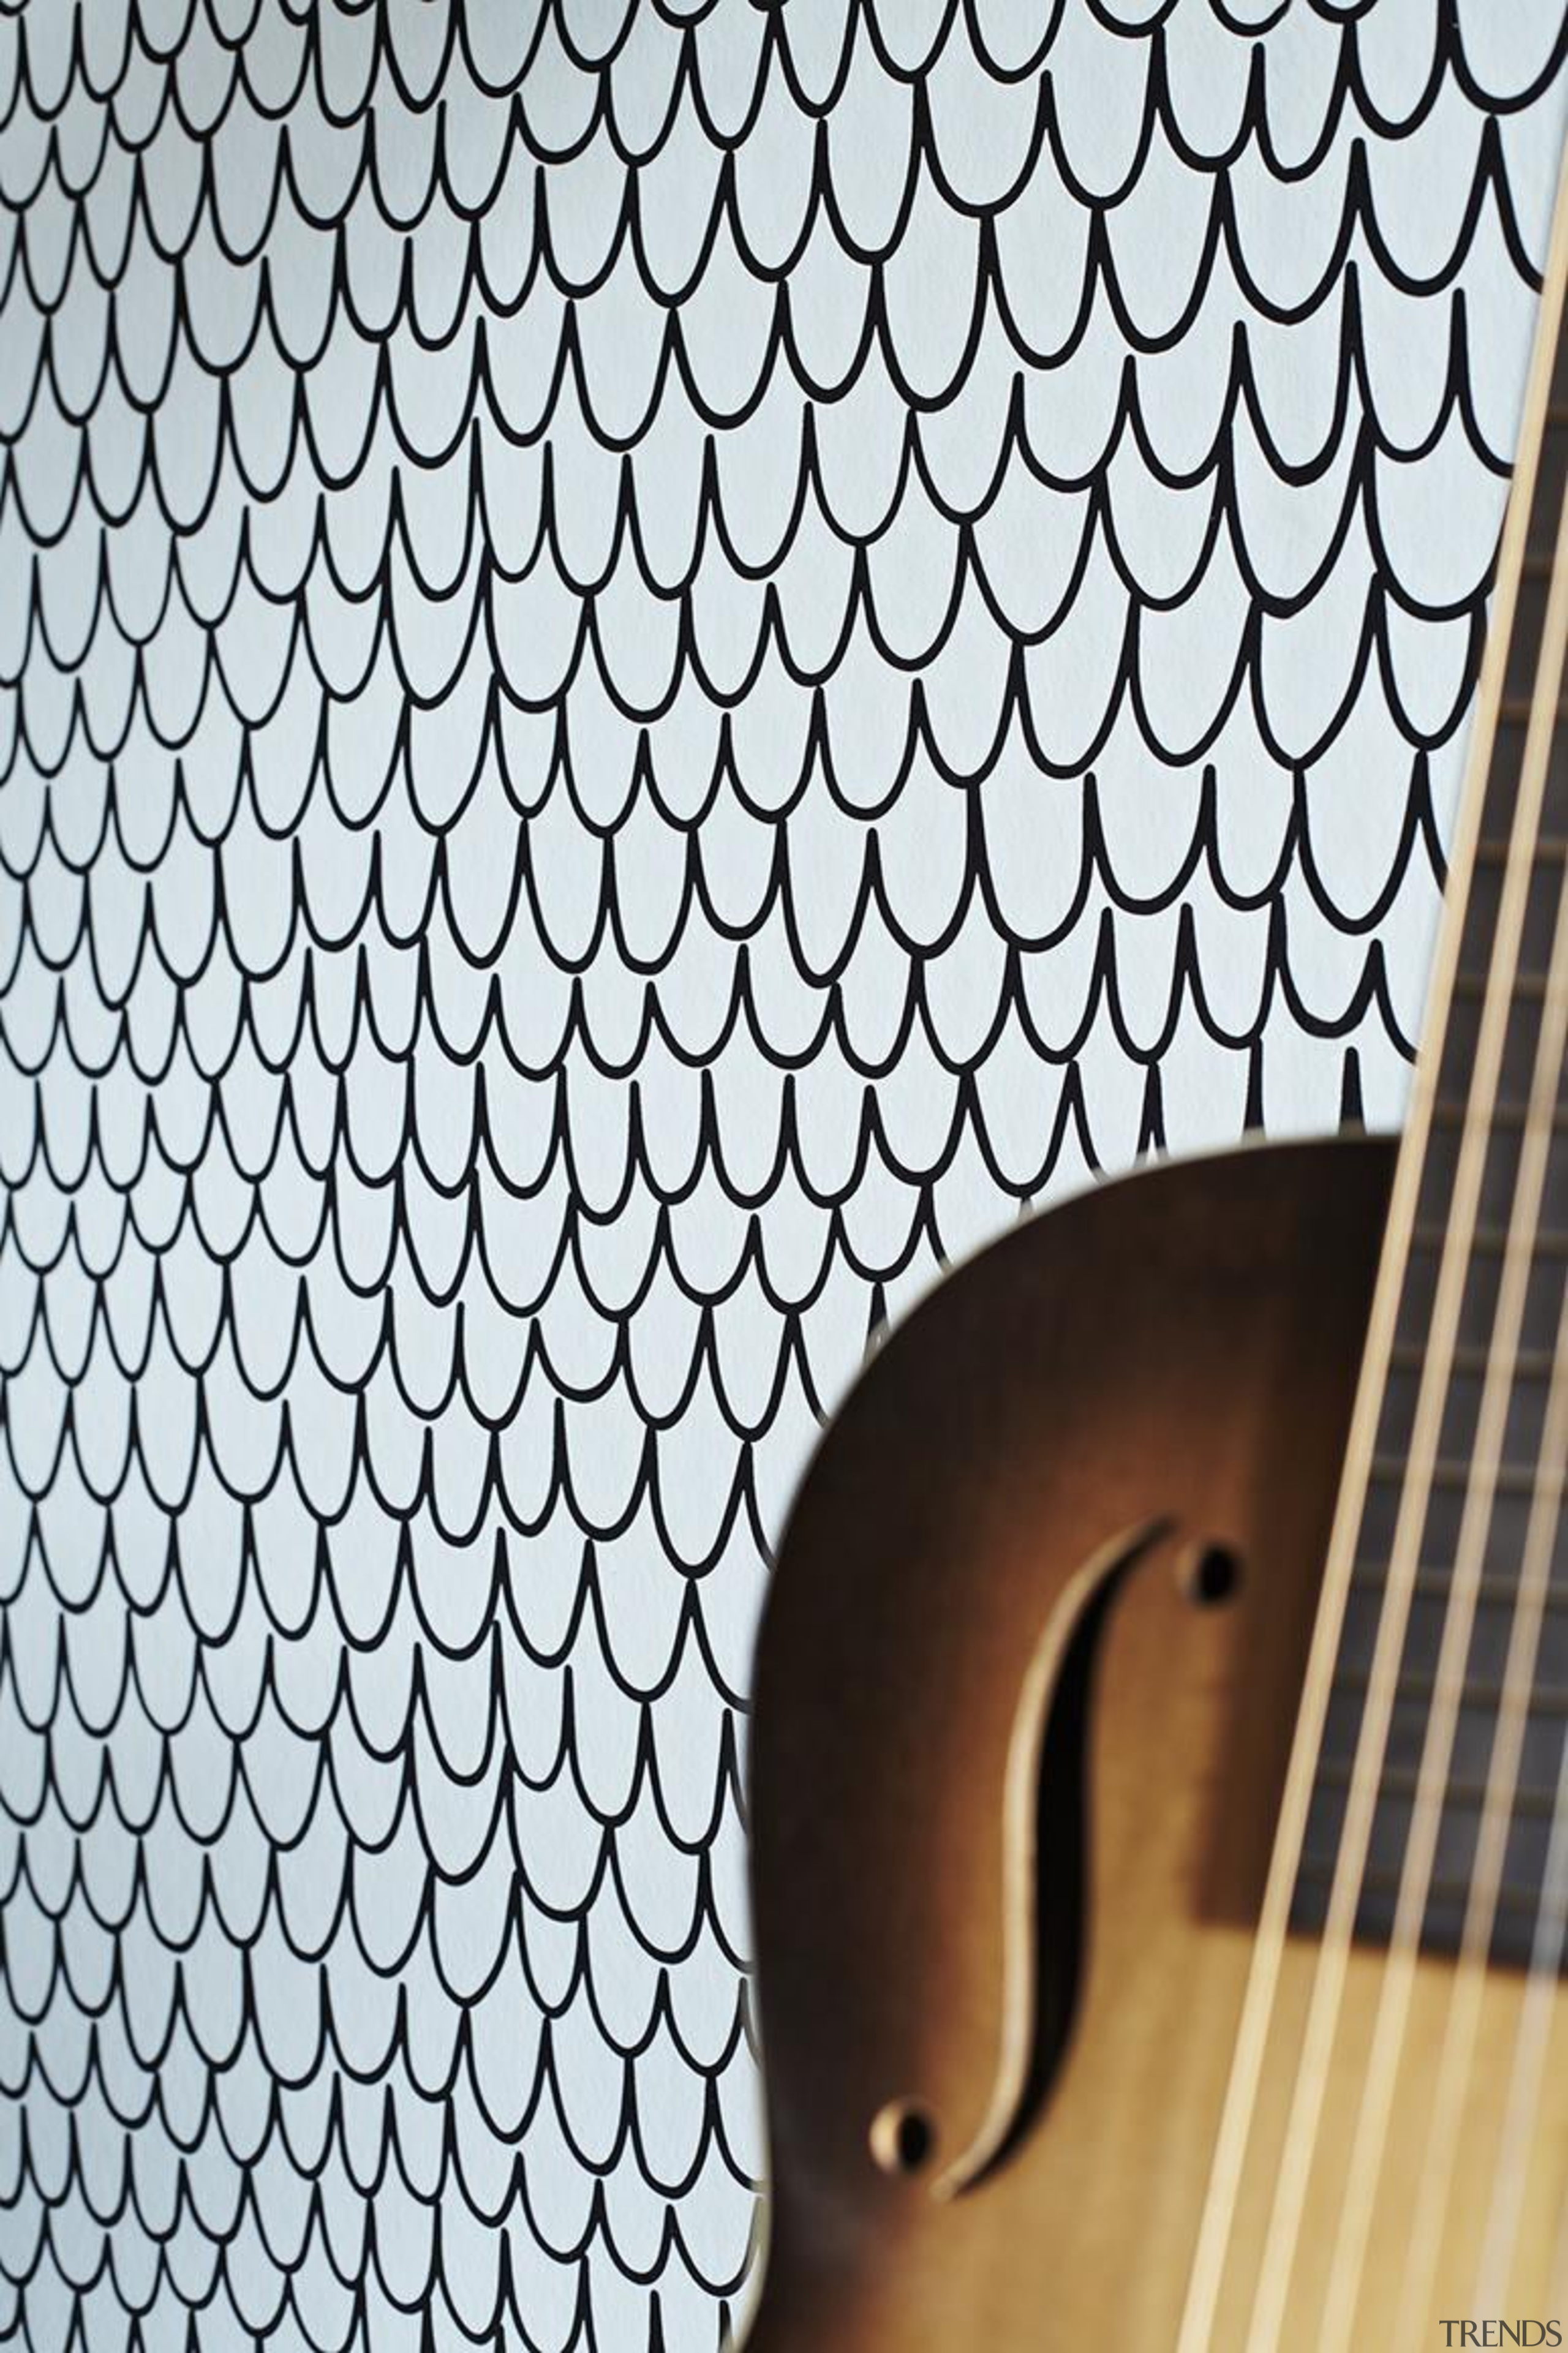 Eley Kishimoto Hand-Printed Wallpaper Collection - Eley Kishimoto font, guitar, line, mesh, musical instrument, pattern, plucked string instruments, string instrument, white